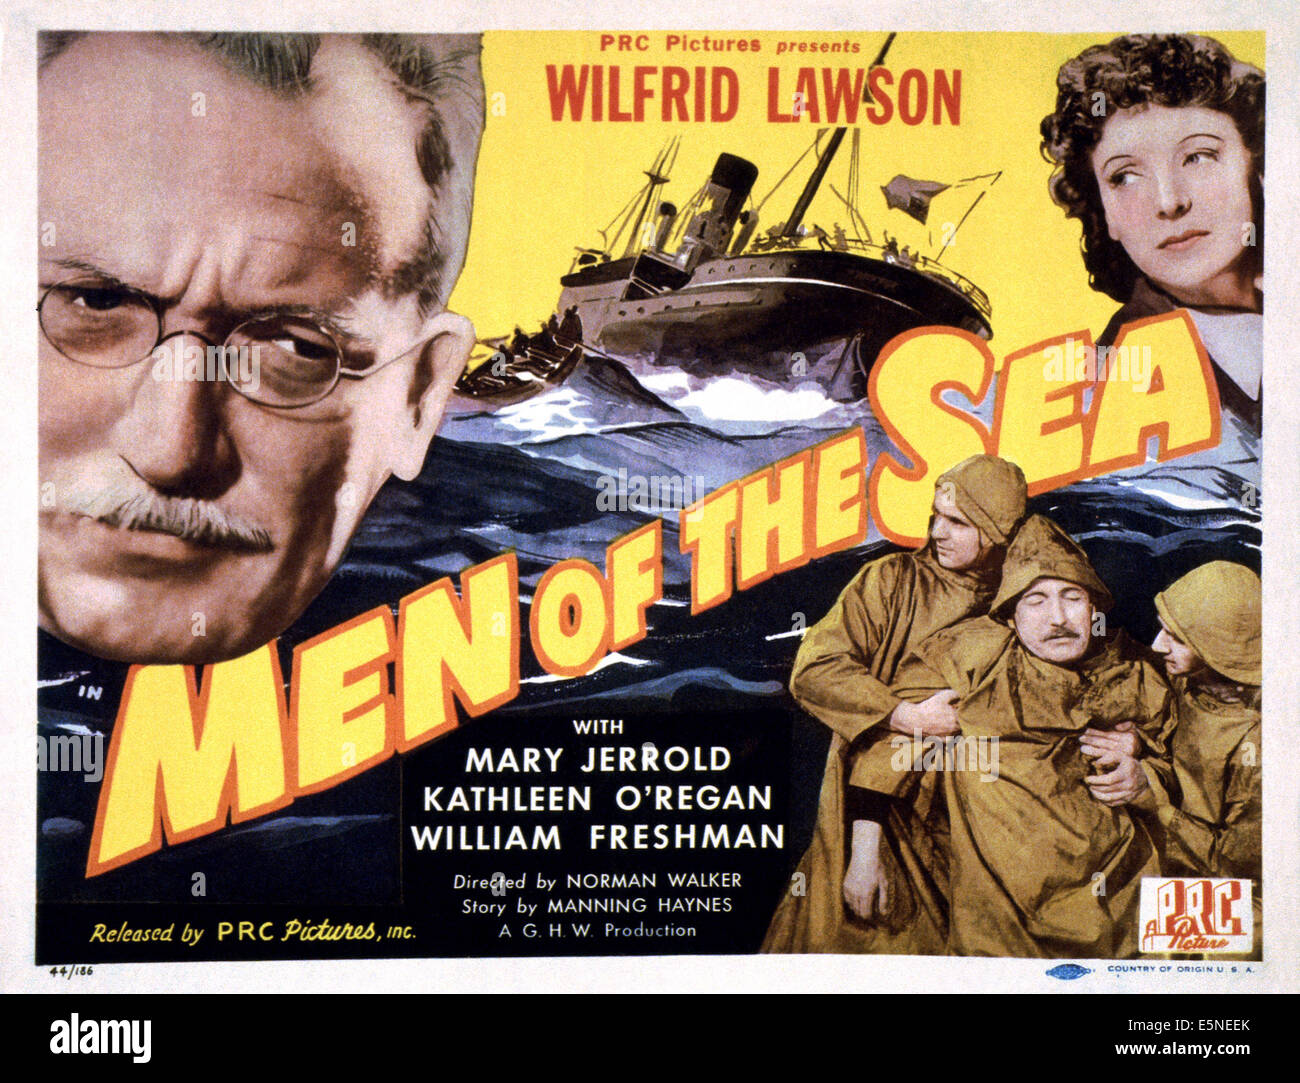 THE MAN AT THE GATE, (aka MEN OF THE SEA), US lobbycard, Wilfrid Lawson (left), 1941 Stock Photo